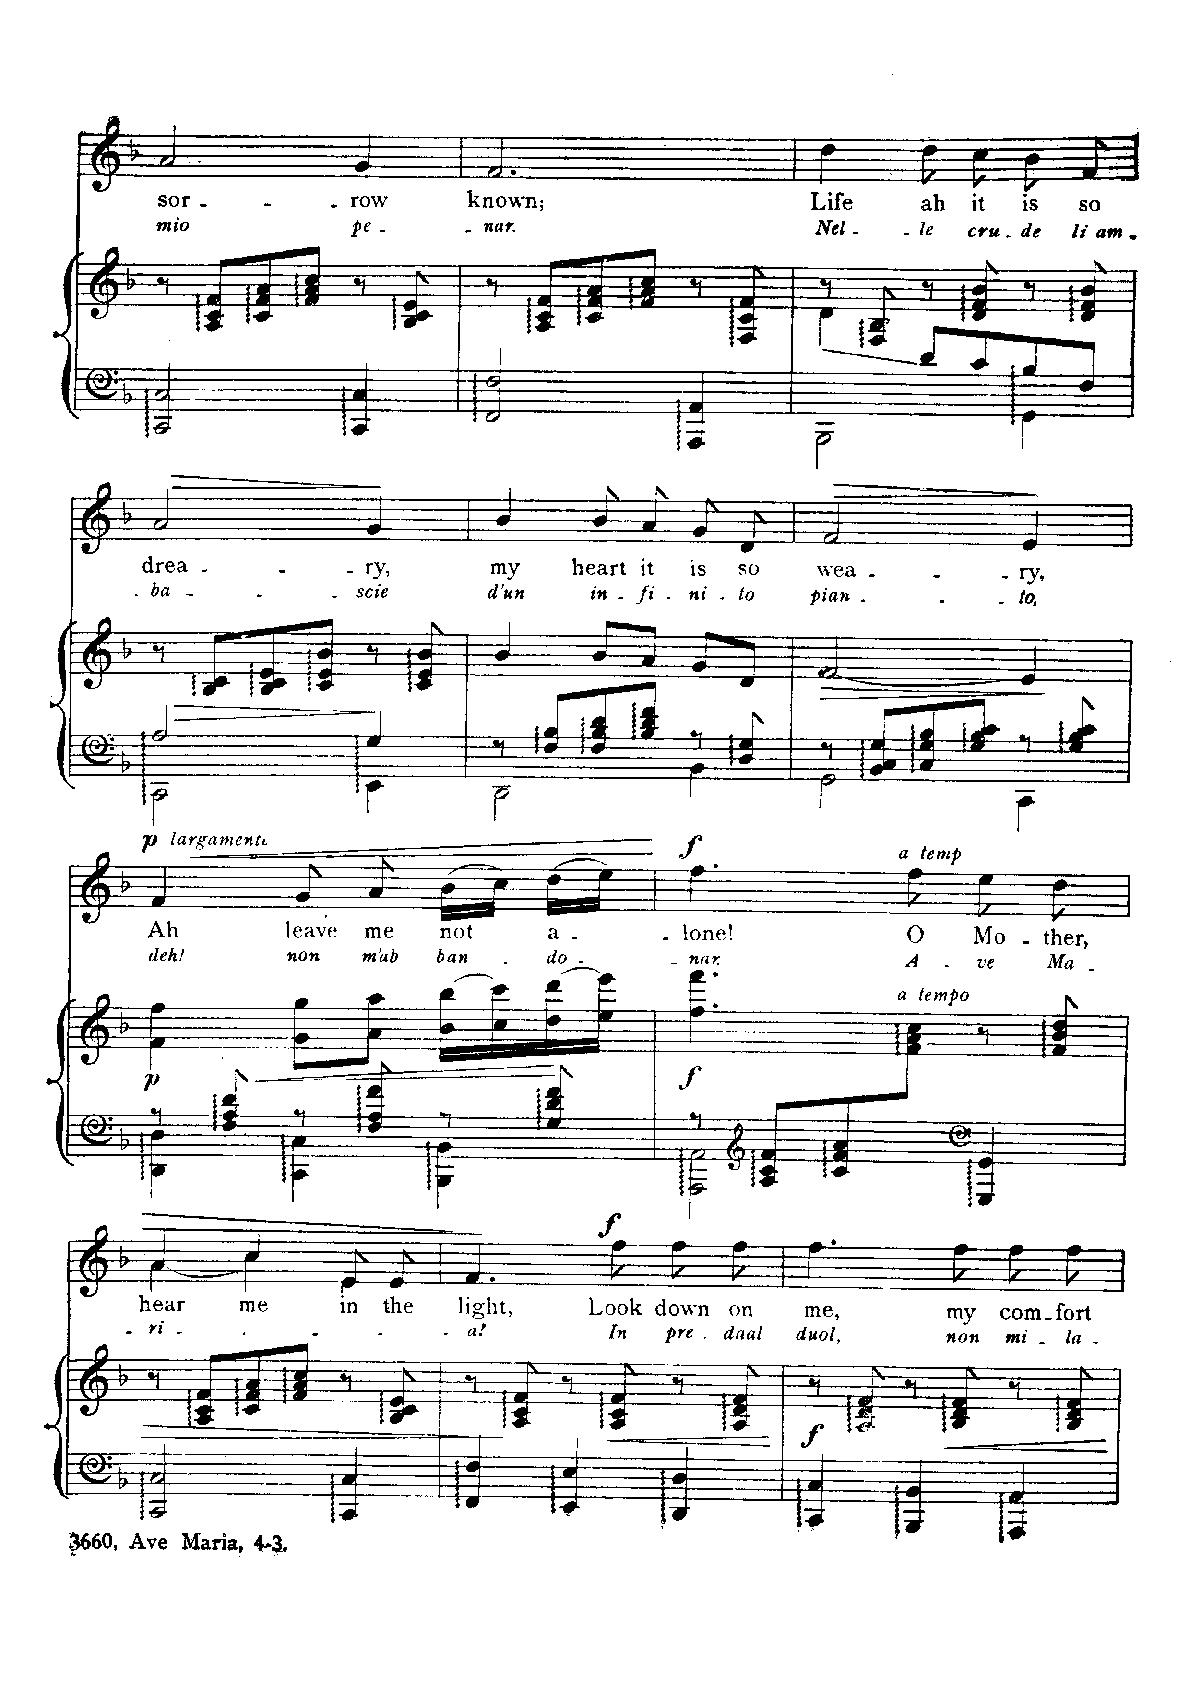 Ave Maria by Mascagni | Cloud Hymnal